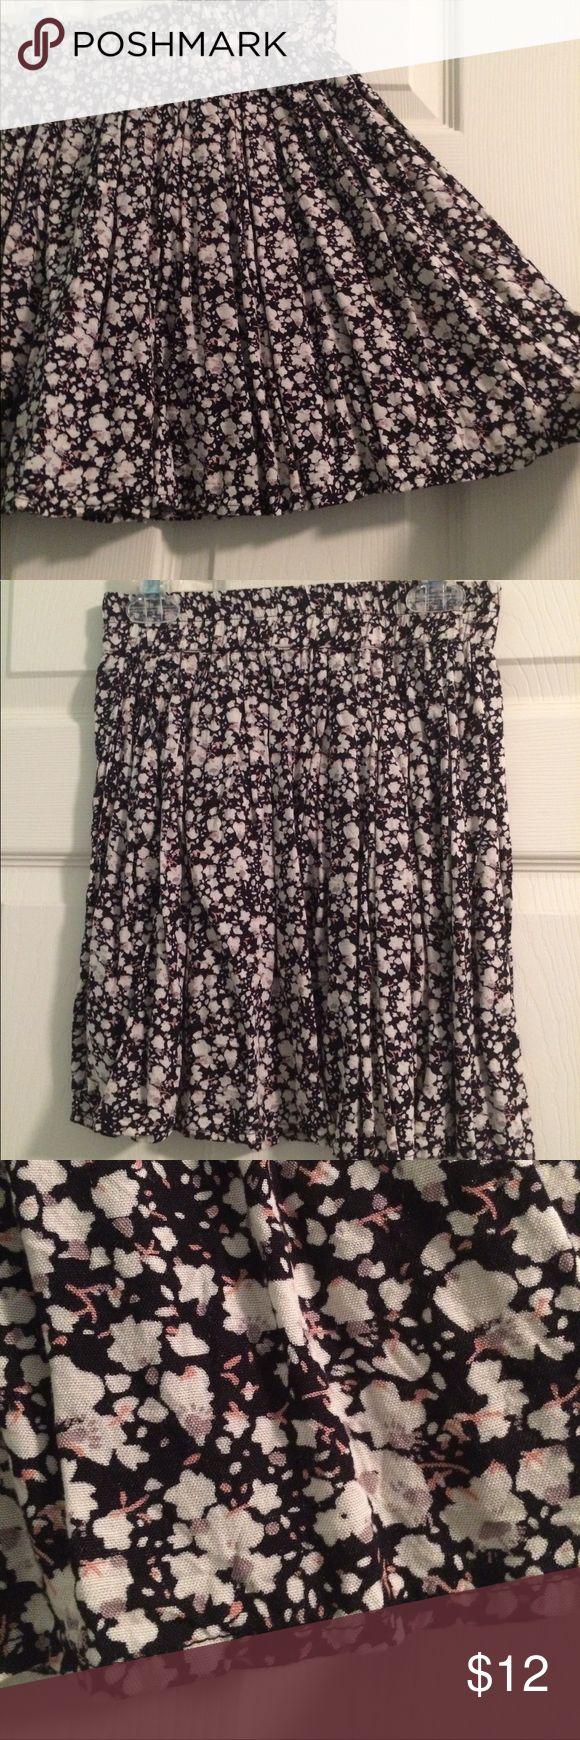 Delia's Floral Skater Skirt, Small, Black & Beige A floral skater skirt from Delia's in a size small. 100% cotton. Good condition, only worn a couple of times until I unfortunately outgrew it! I paired it with black pantyhose and black heeled booties. Delia's Skirts Circle & Skater